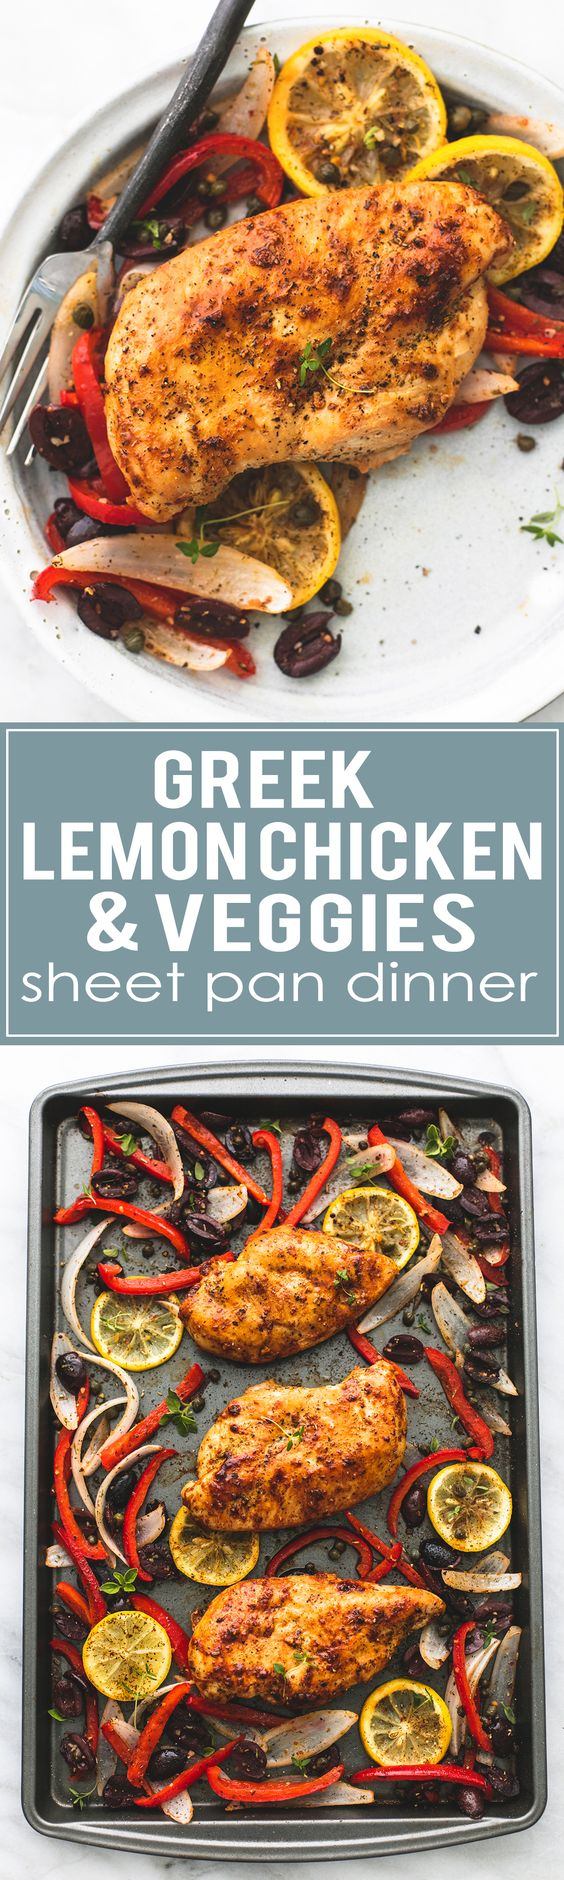 Easy healthy Baked Greek Chicken & Veggies Sheet Pan Dinner Recipe via Creme de la Crumb - an easy to make and incredibly tasty meal the whole family loves!